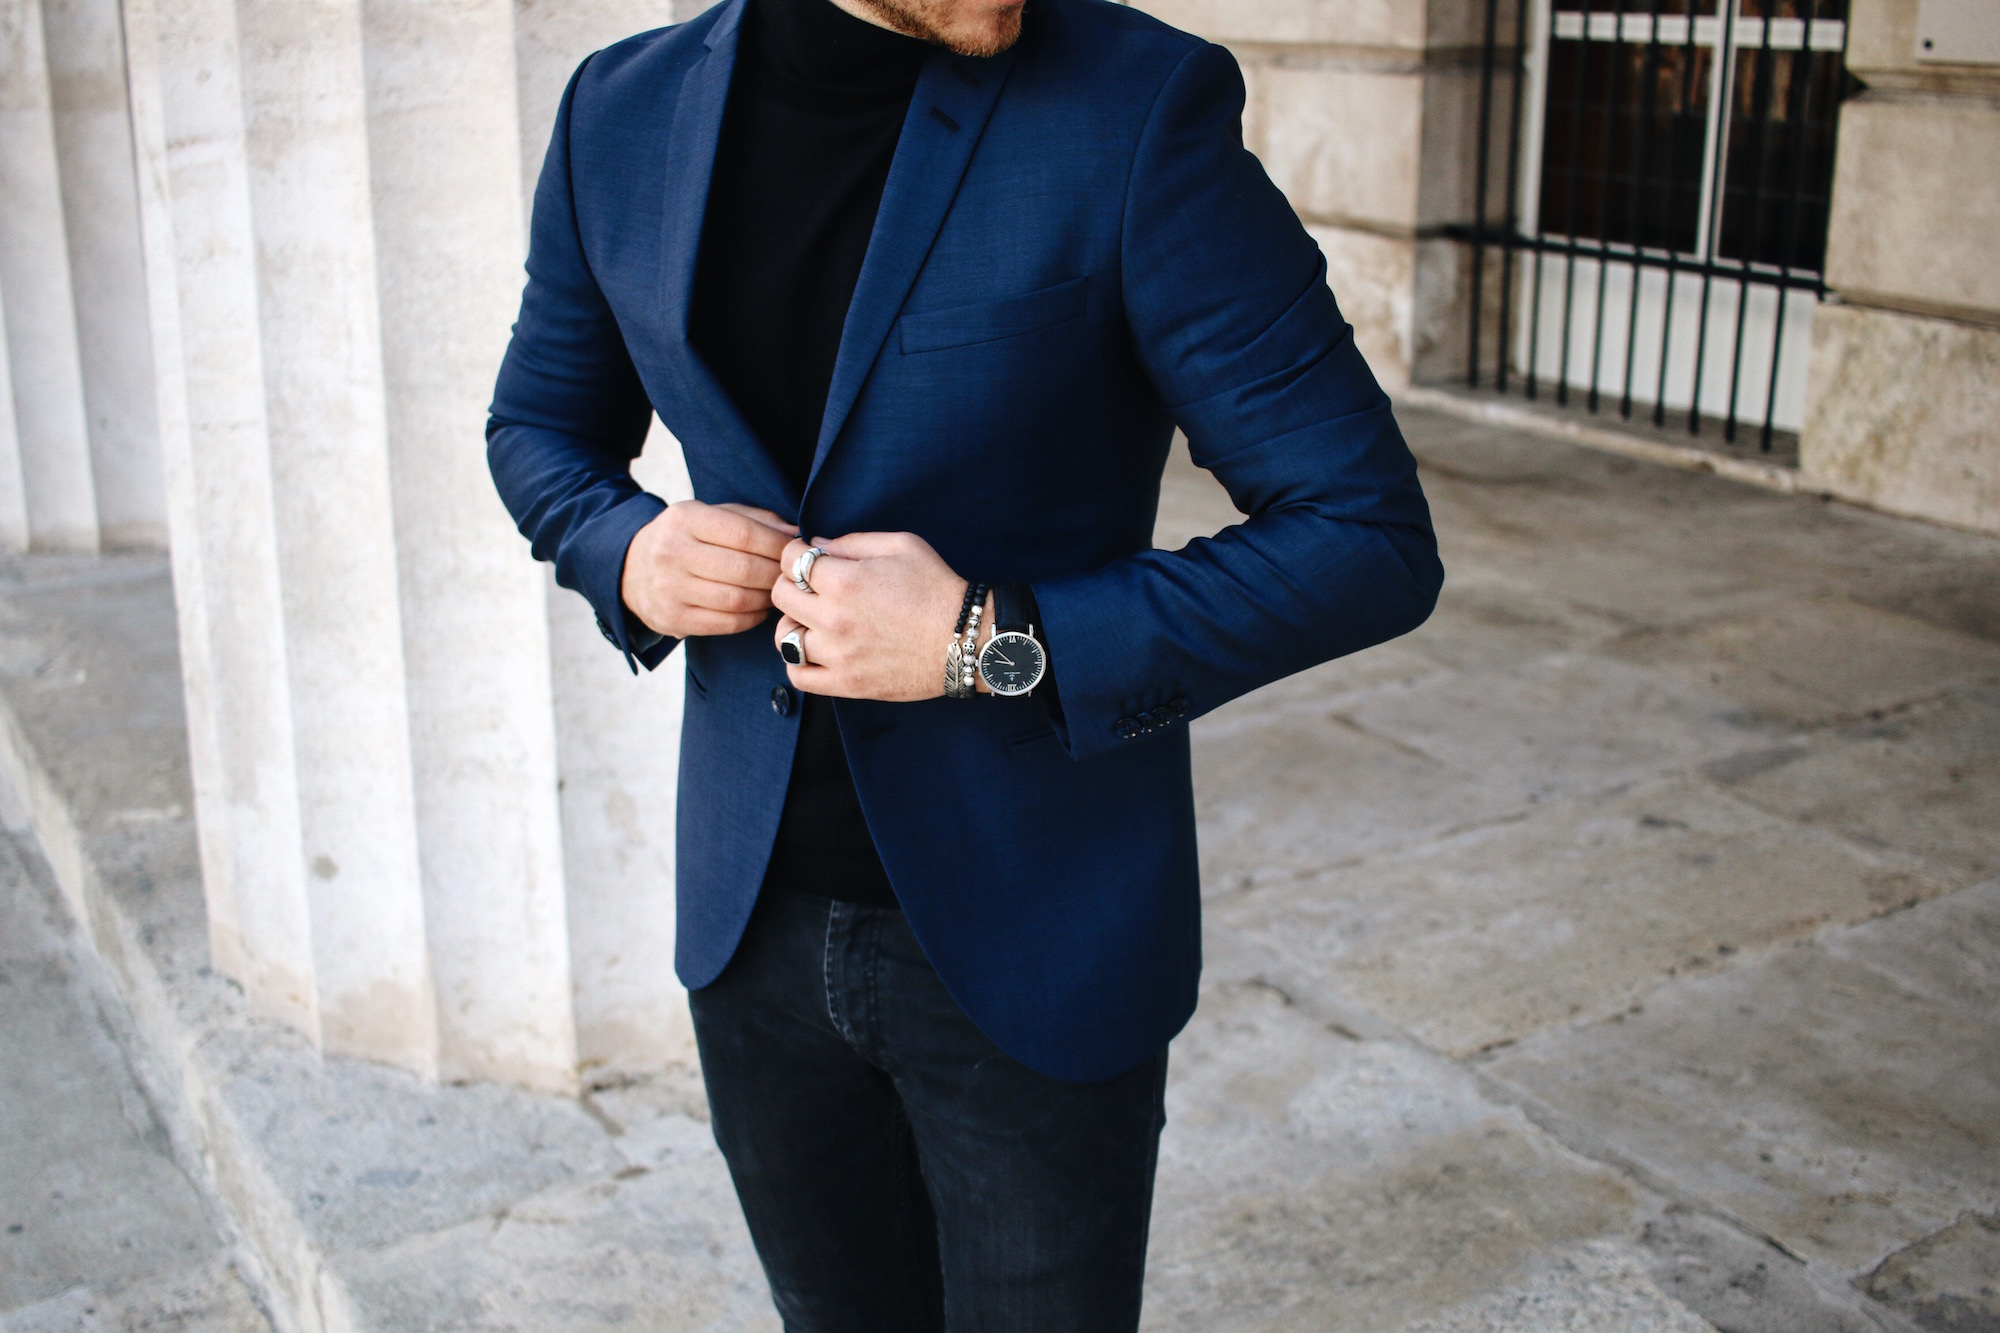 Tiger-Of-Sweden-Suit-Mix-Match_Three-ways-to-wear-a-suit_Meanwhile-in-Awesometown_Austrian-Mens-Fashion-and-Lifestyle-Blogger23